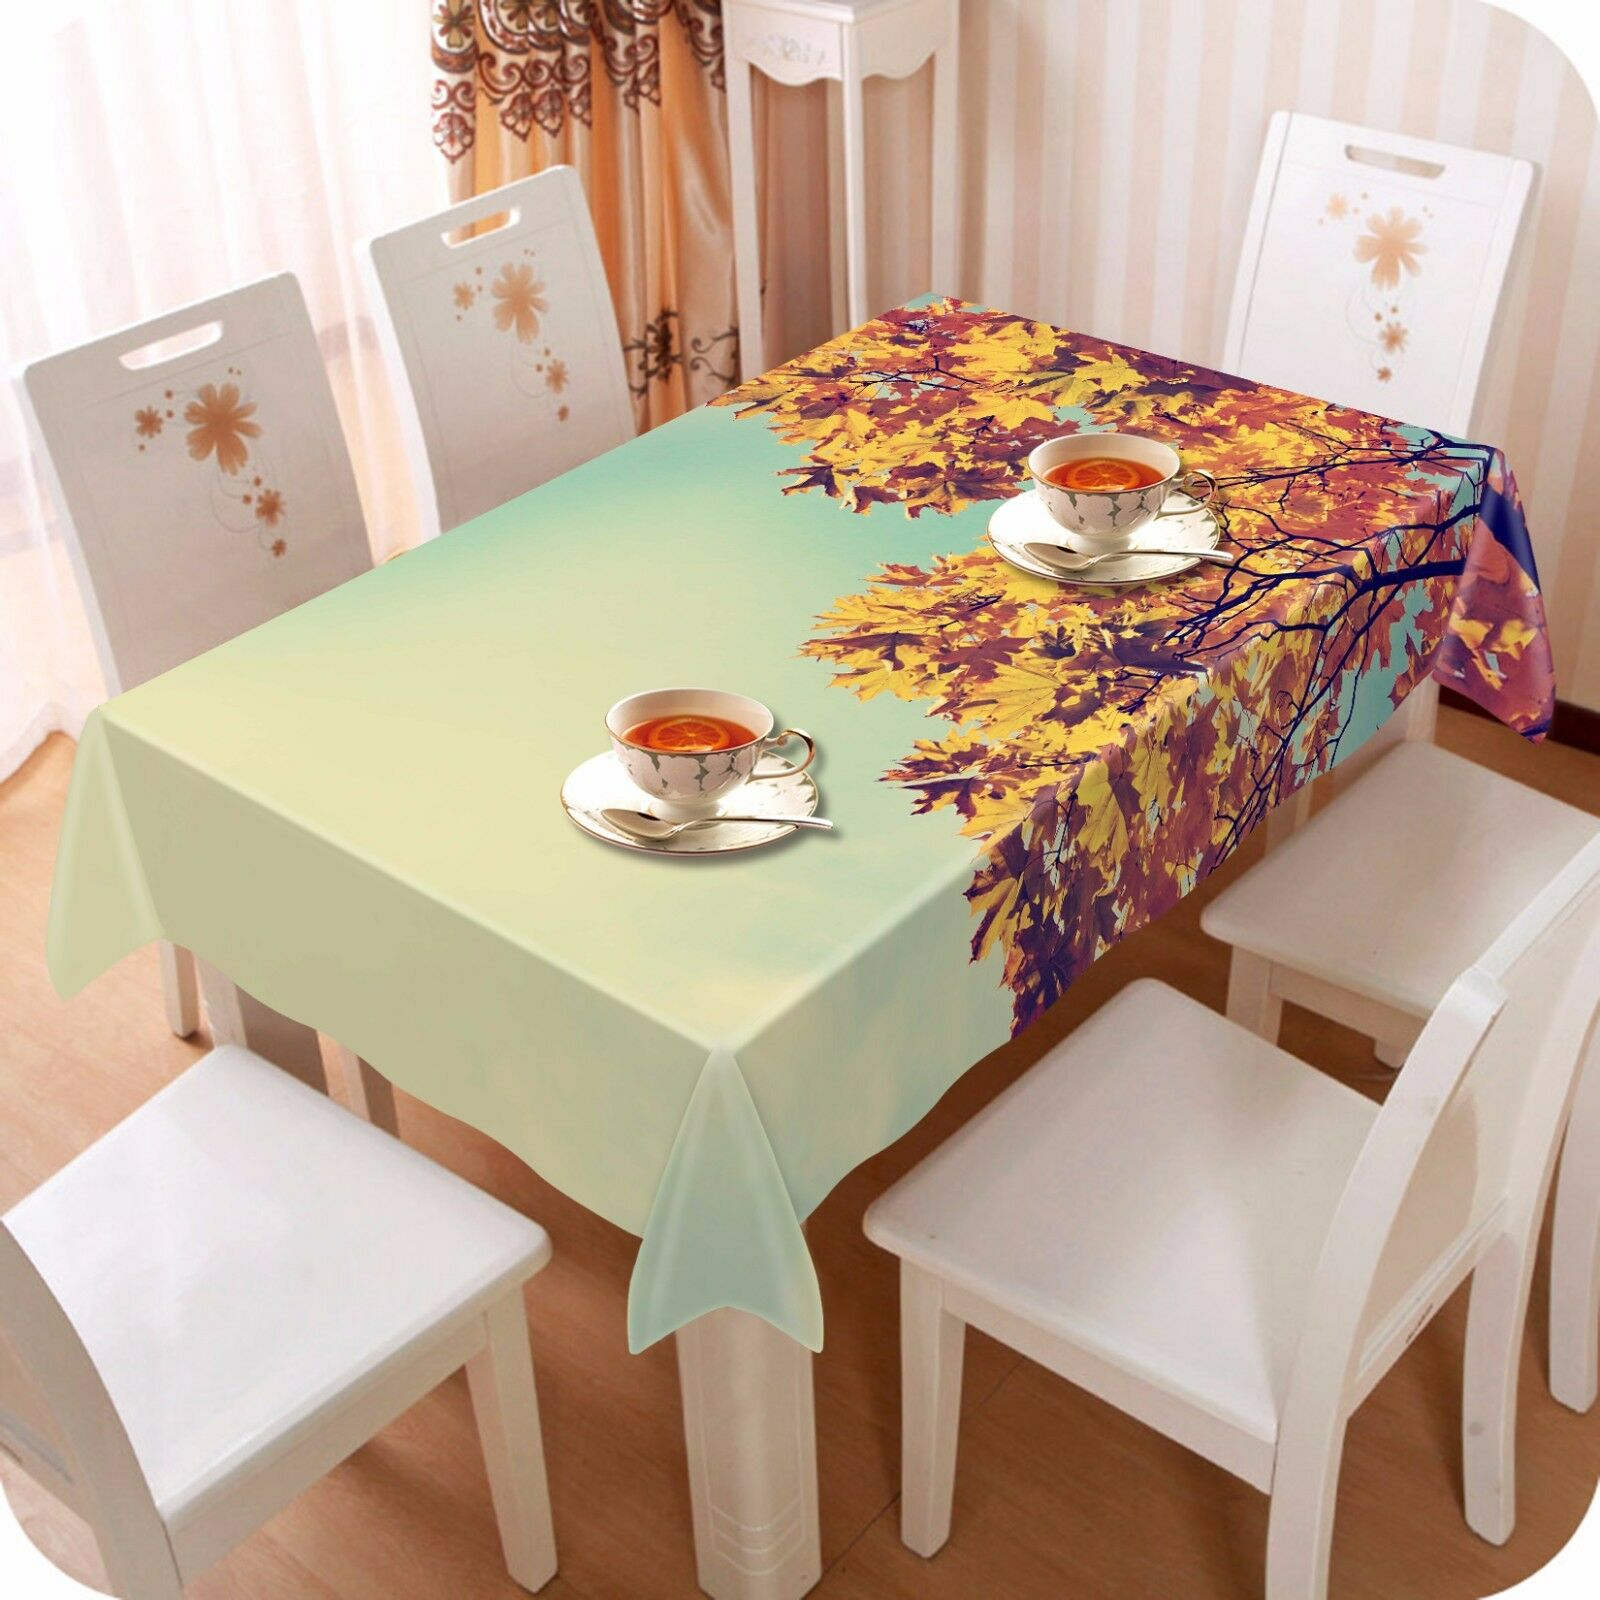 3D Indus Leaves 1 Tablecloth Table Cover Cloth Birthday Party Event AJ WALLPAPER